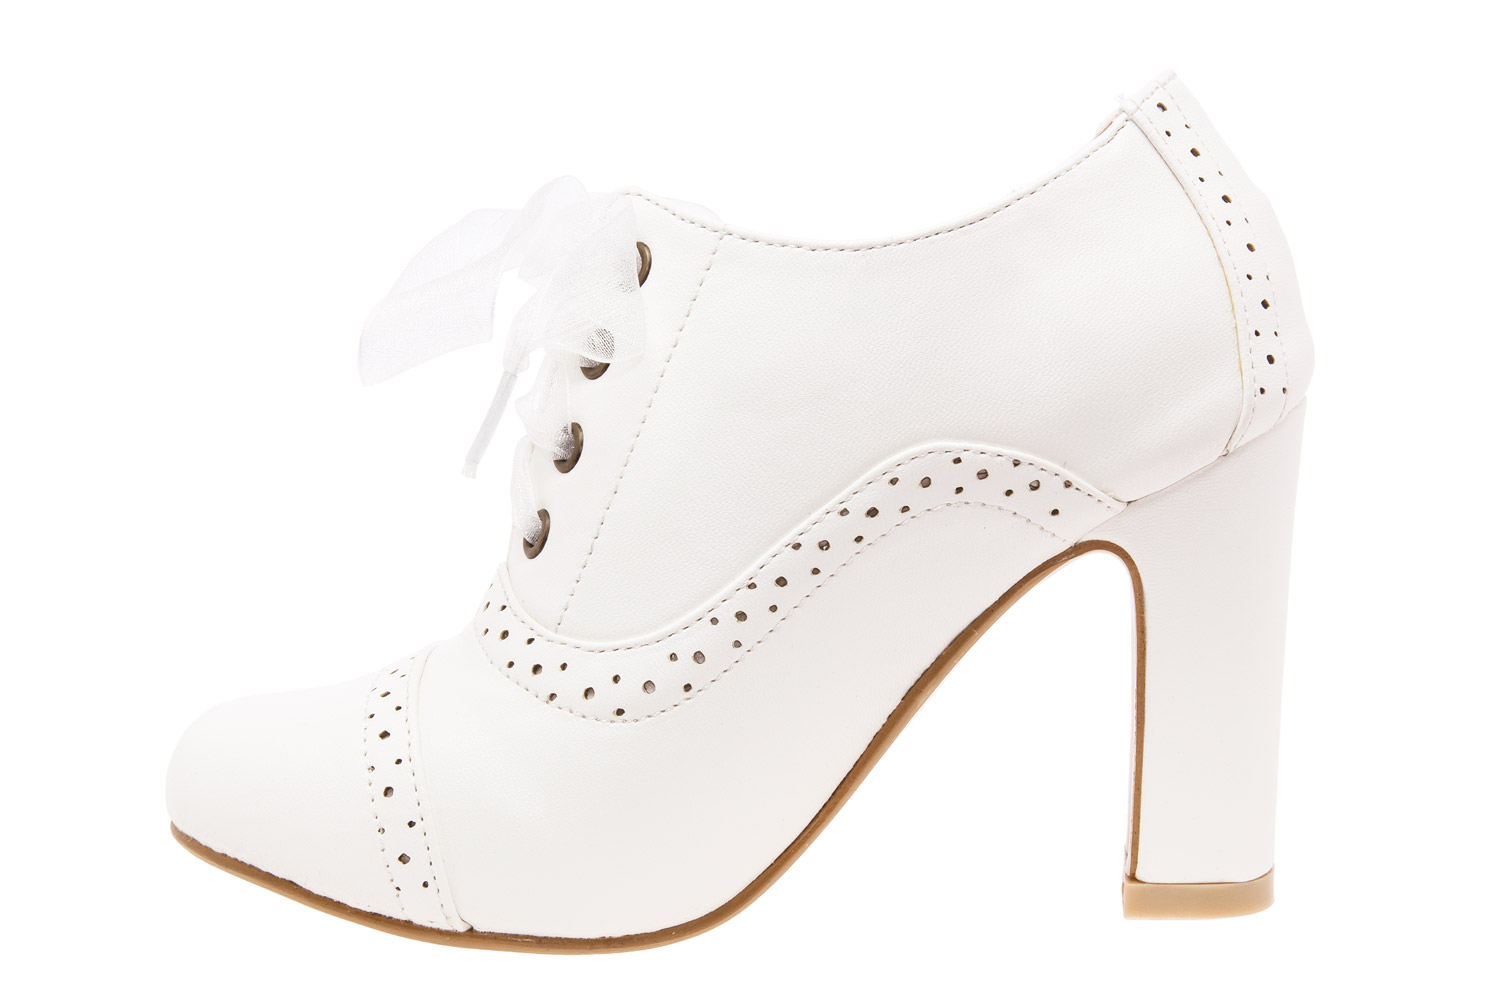 Zapatos en Soft Blanco Estilo Oxford.